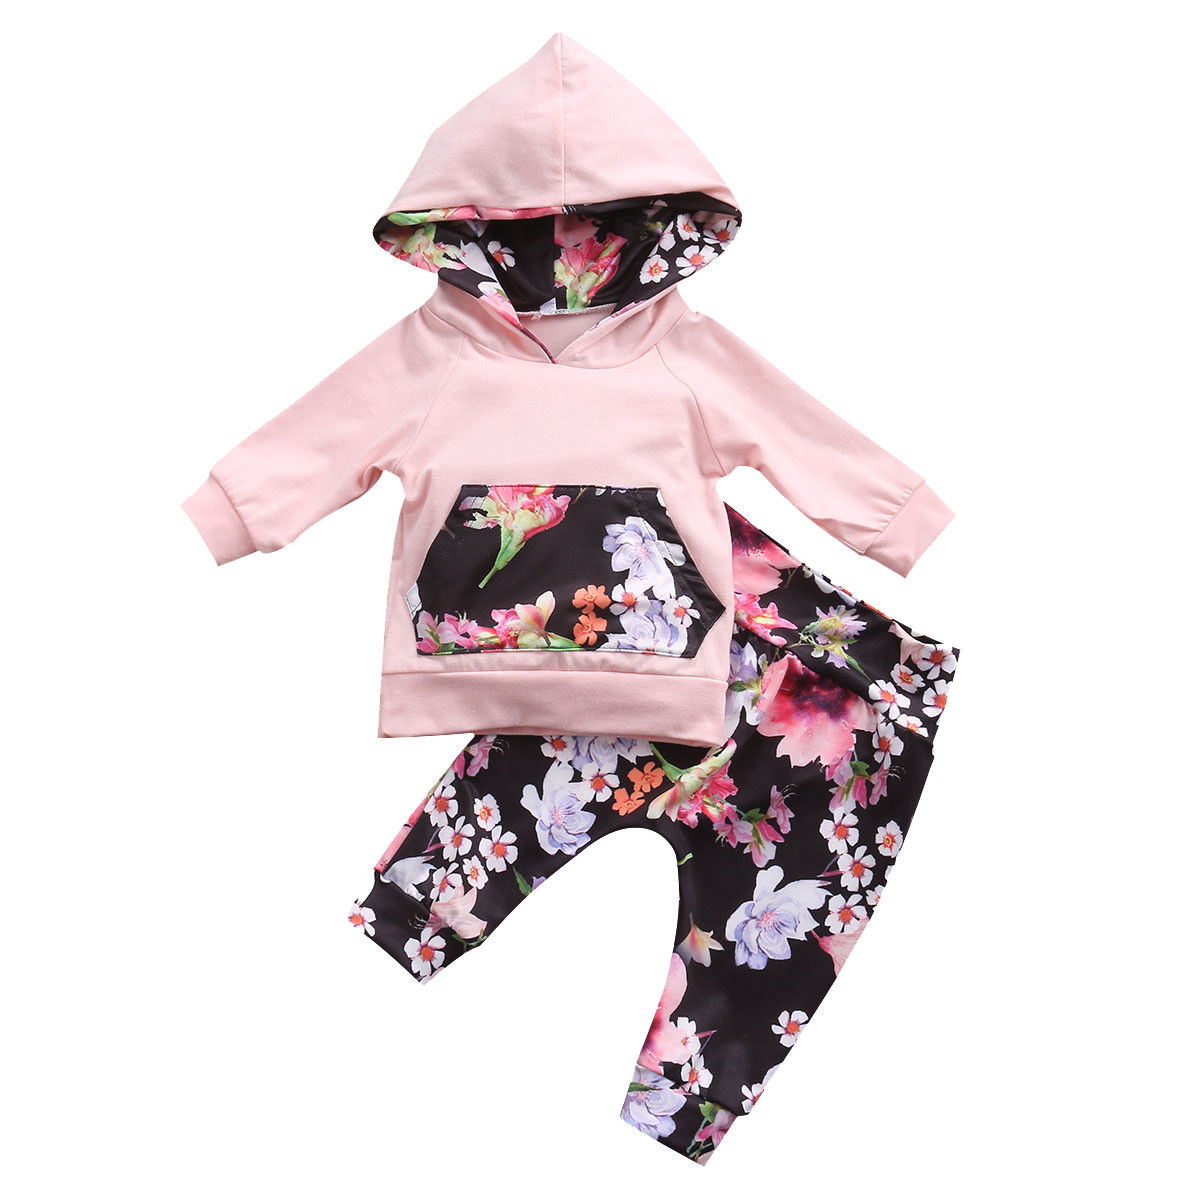 Infant Newborn Baby Girls Clothes Set Hooded Tops Long Sleeve T-shirt Floral Long Leggings Outfit Children Clothing Autumn 2PCs newborn infant baby girls autumn clothes set cartoon print cotton long sleeve t shirt tops pants 2pcs outfit clothing sets page 8